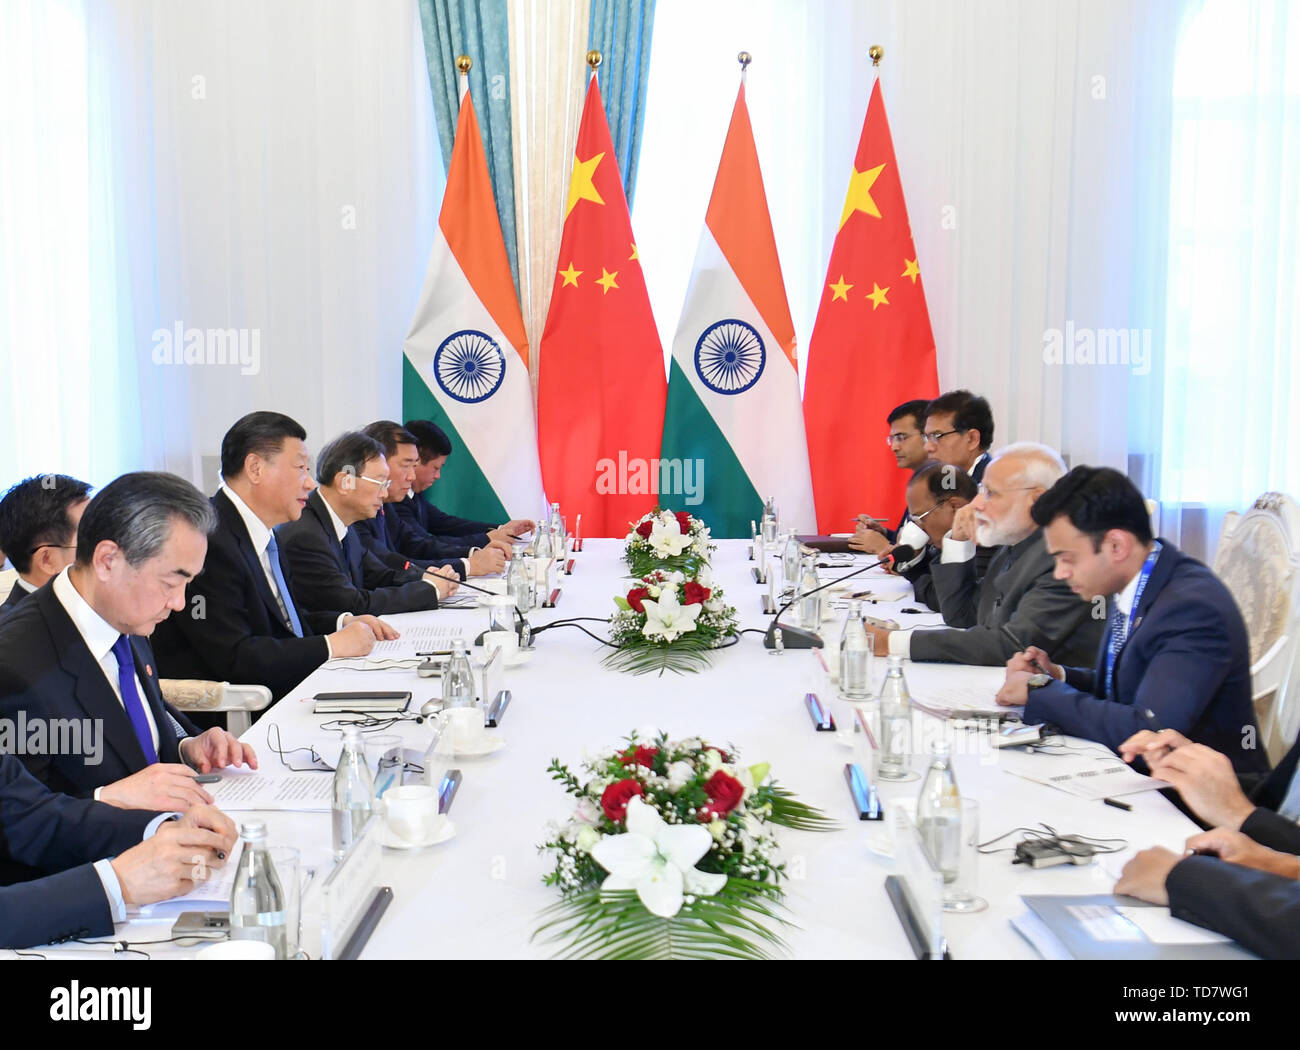 Bishkek, Kyrgyzstan. 13th June, 2019. Chinese President Xi Jinping meets with Indian Prime Minister Narendra Modi in Bishkek, Kyrgyzstan, June 13, 2019. Credit: Yin Bogu/Xinhua/Alamy Live News - Stock Image